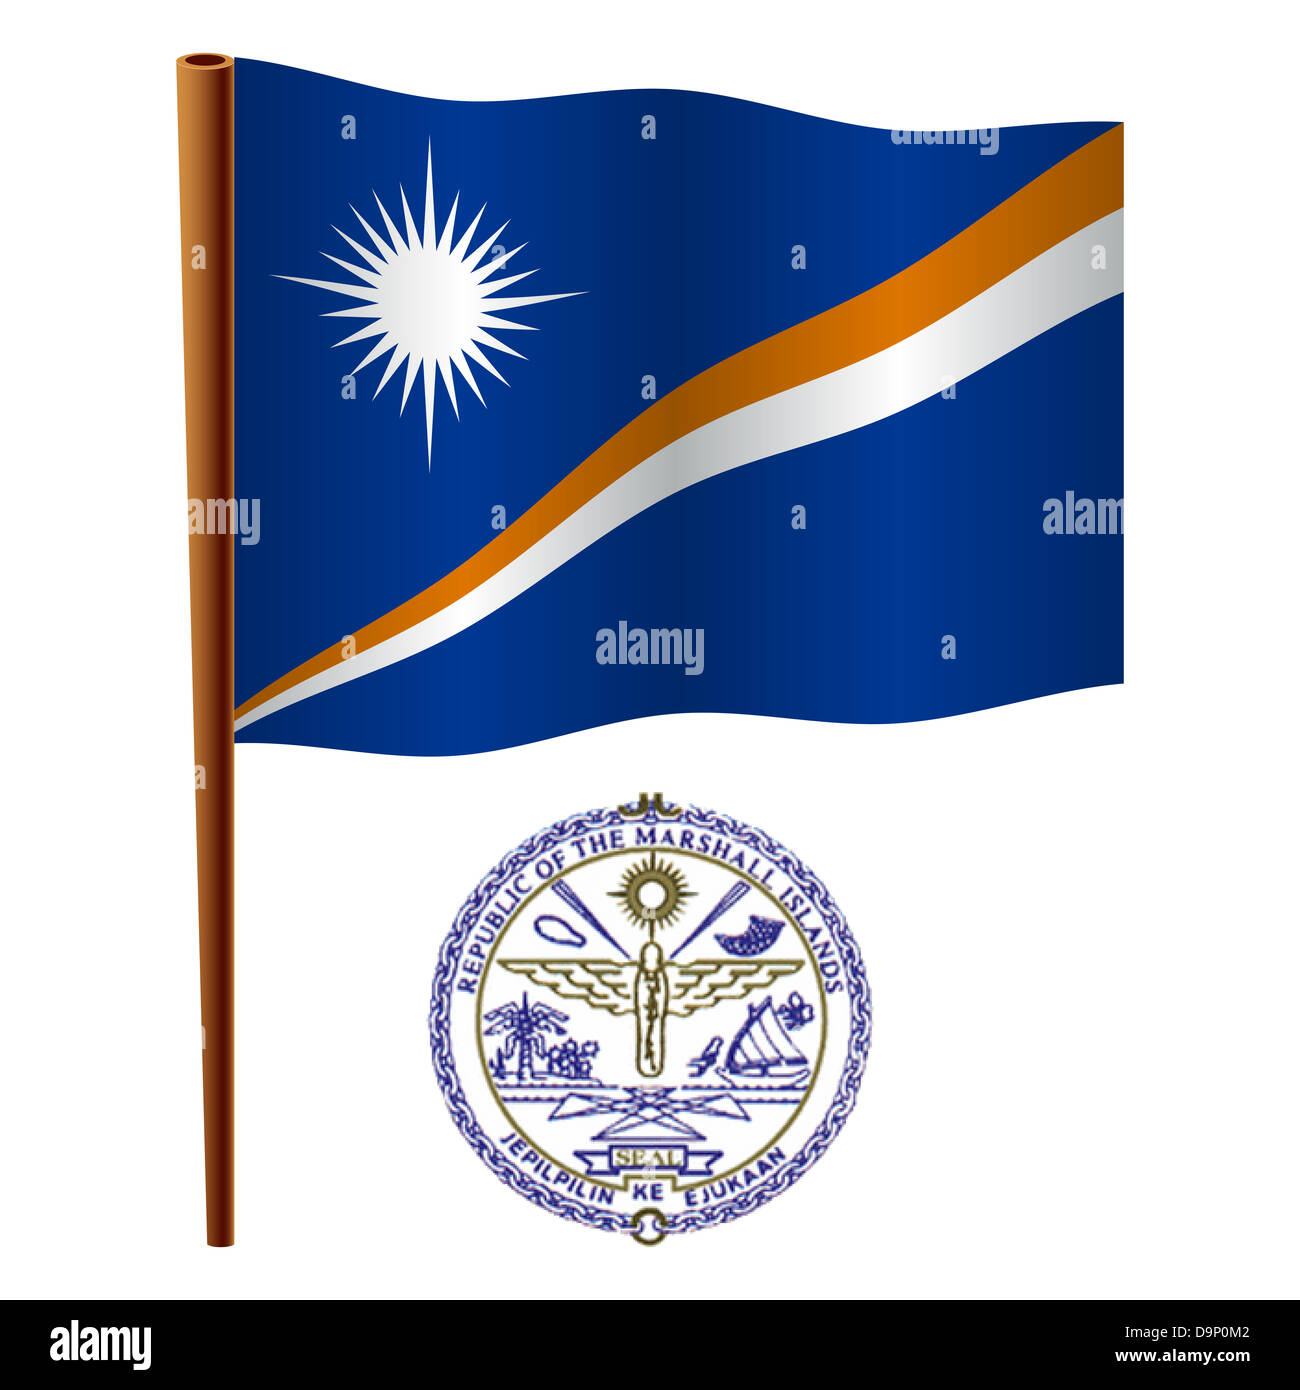 marshall islands wavy flag and coat of arm against white background, vector art illustration, image contains transparency - Stock Image